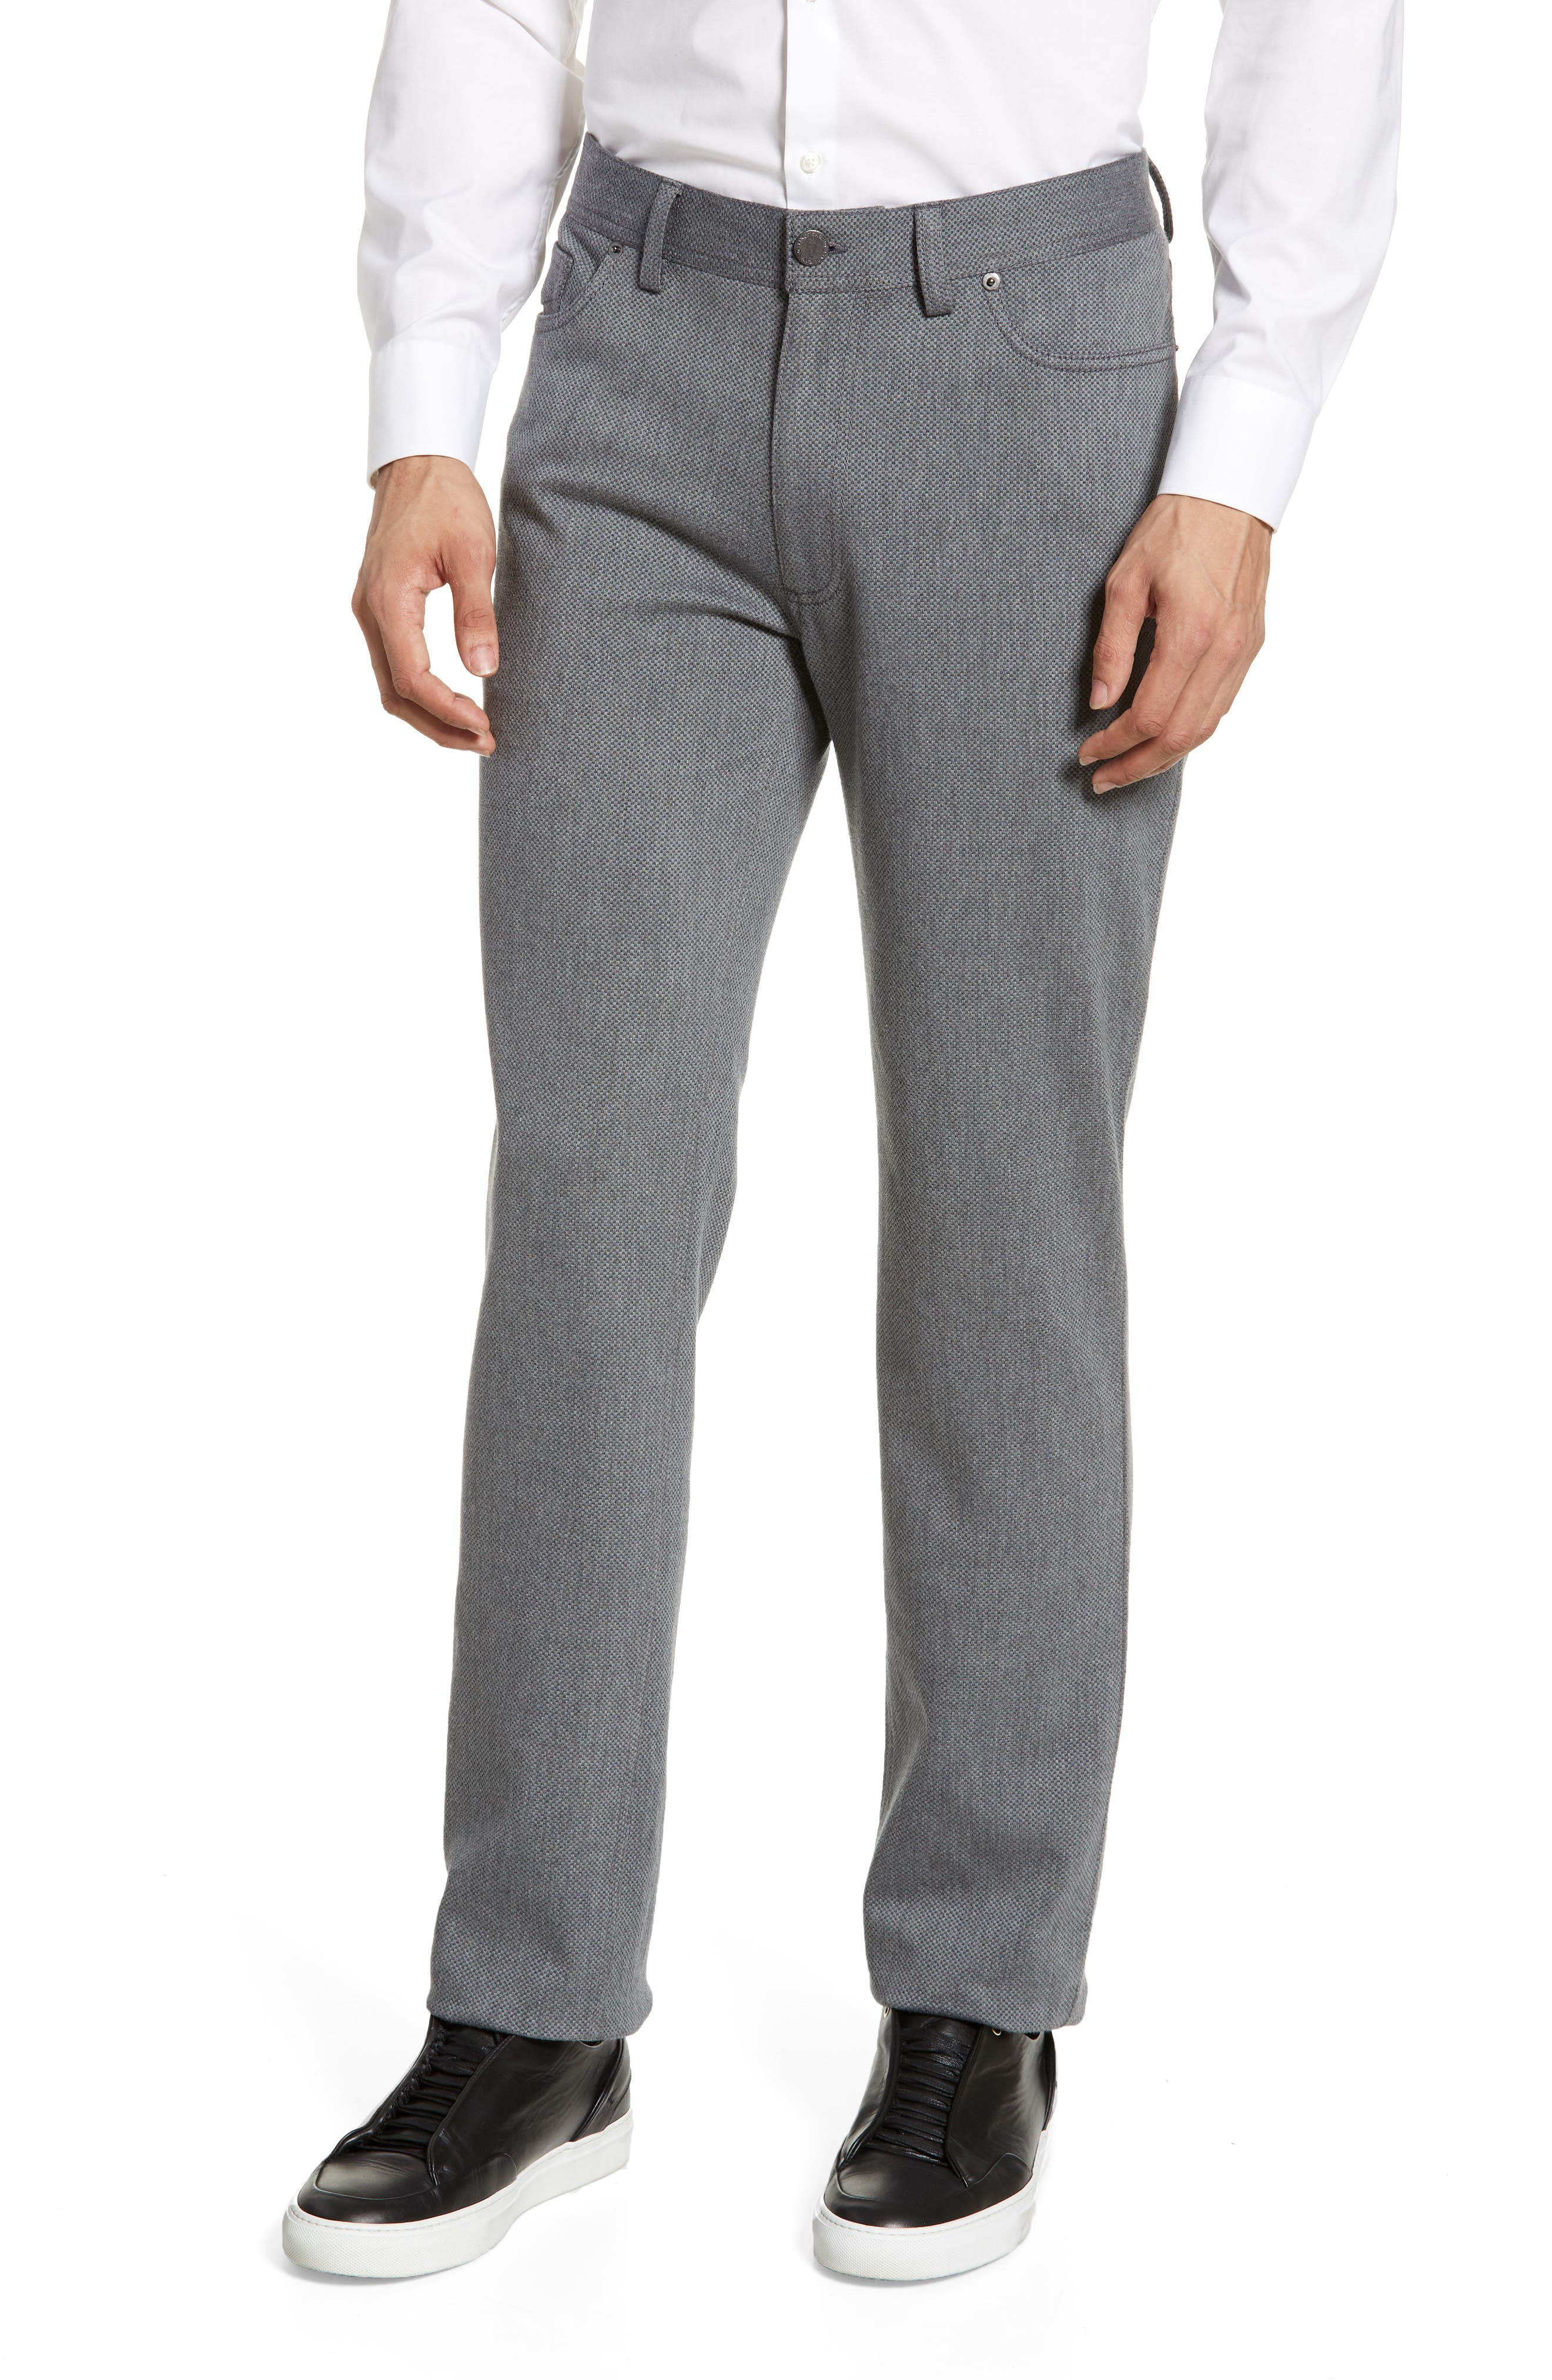 VINCE CAMUTO Straight Leg Five Pocket Stretch Pants, Main, color, HEATHER CHARCOAL CROSSHATCH